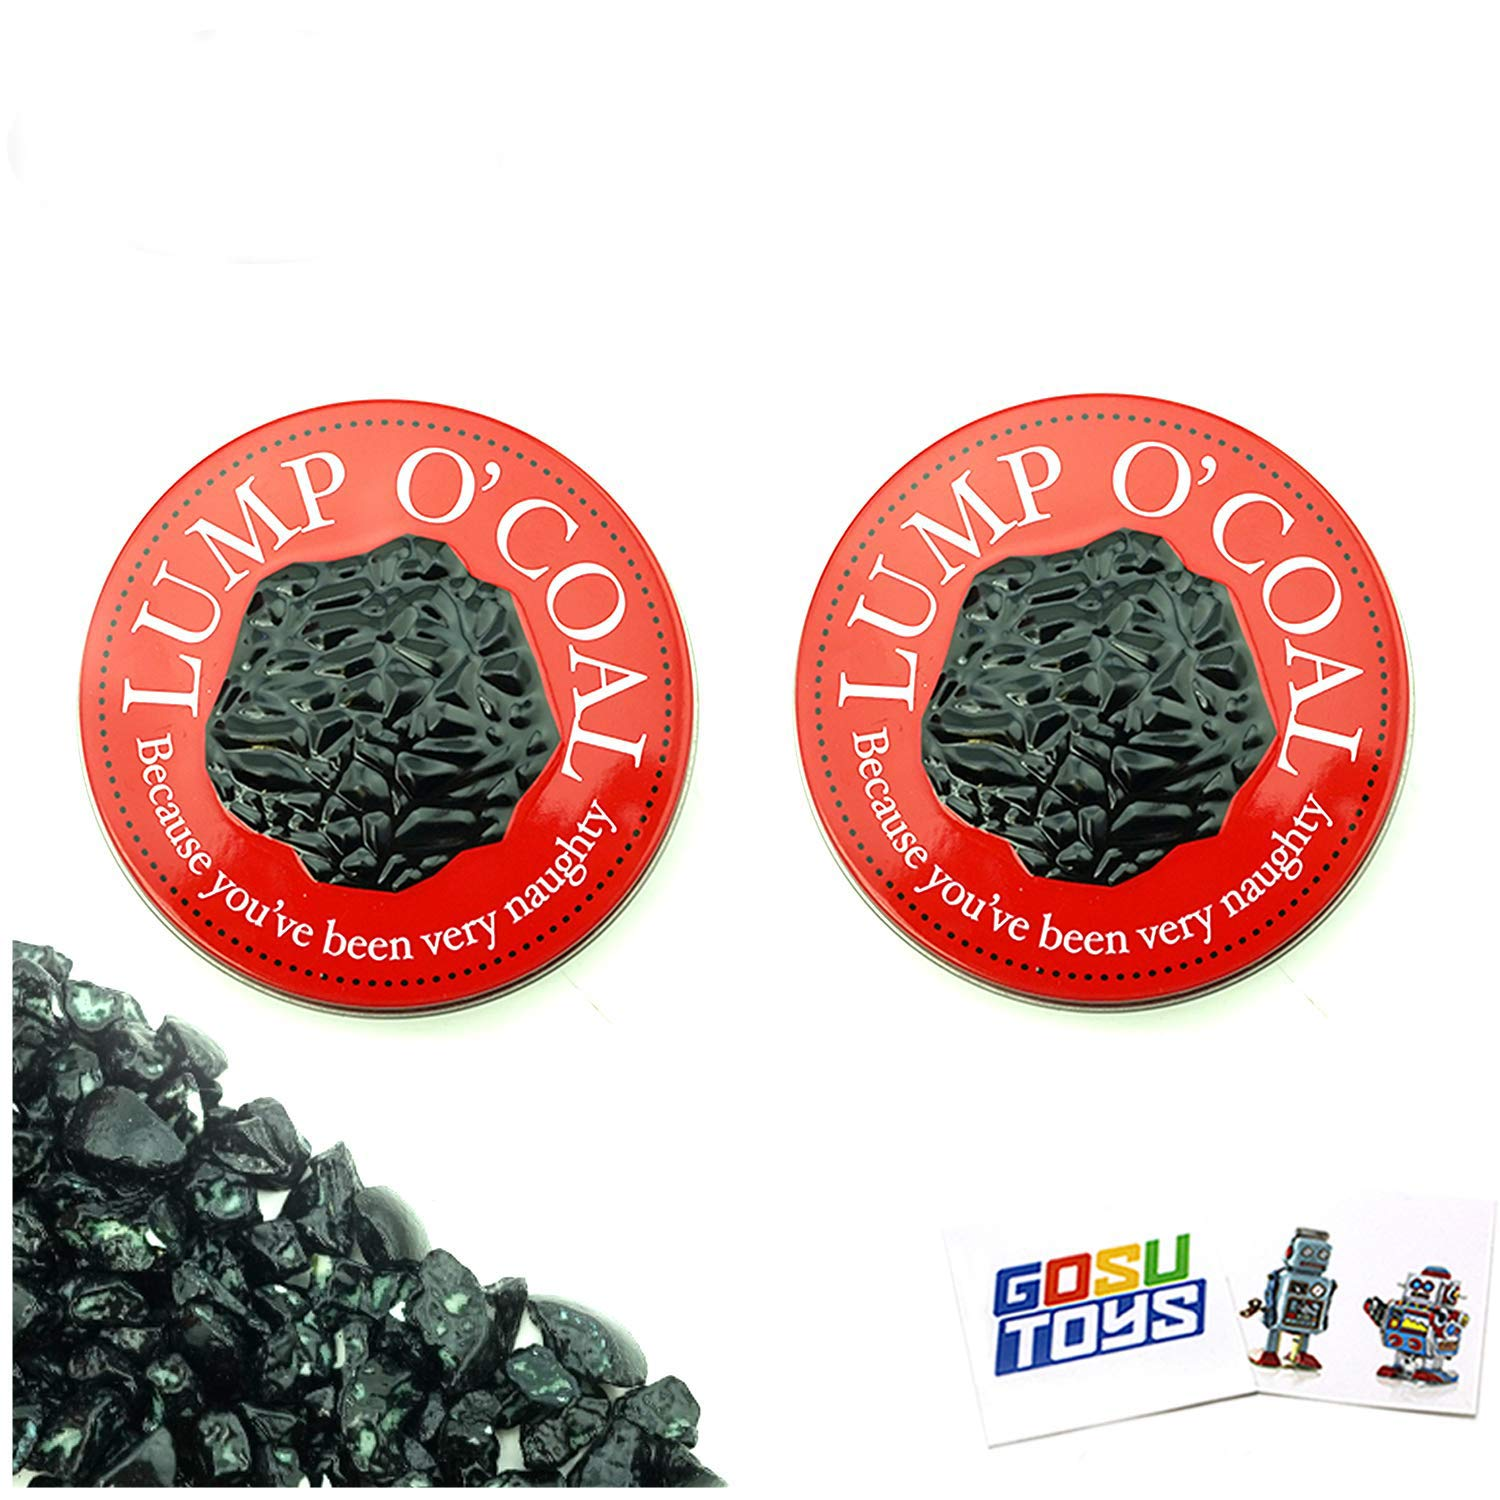 (2 Pack) Lump O Coal Tin Bubble Gum Candy Lump of Coal Shaped Gift Stuffer with 2 Gosu Toys Stickers